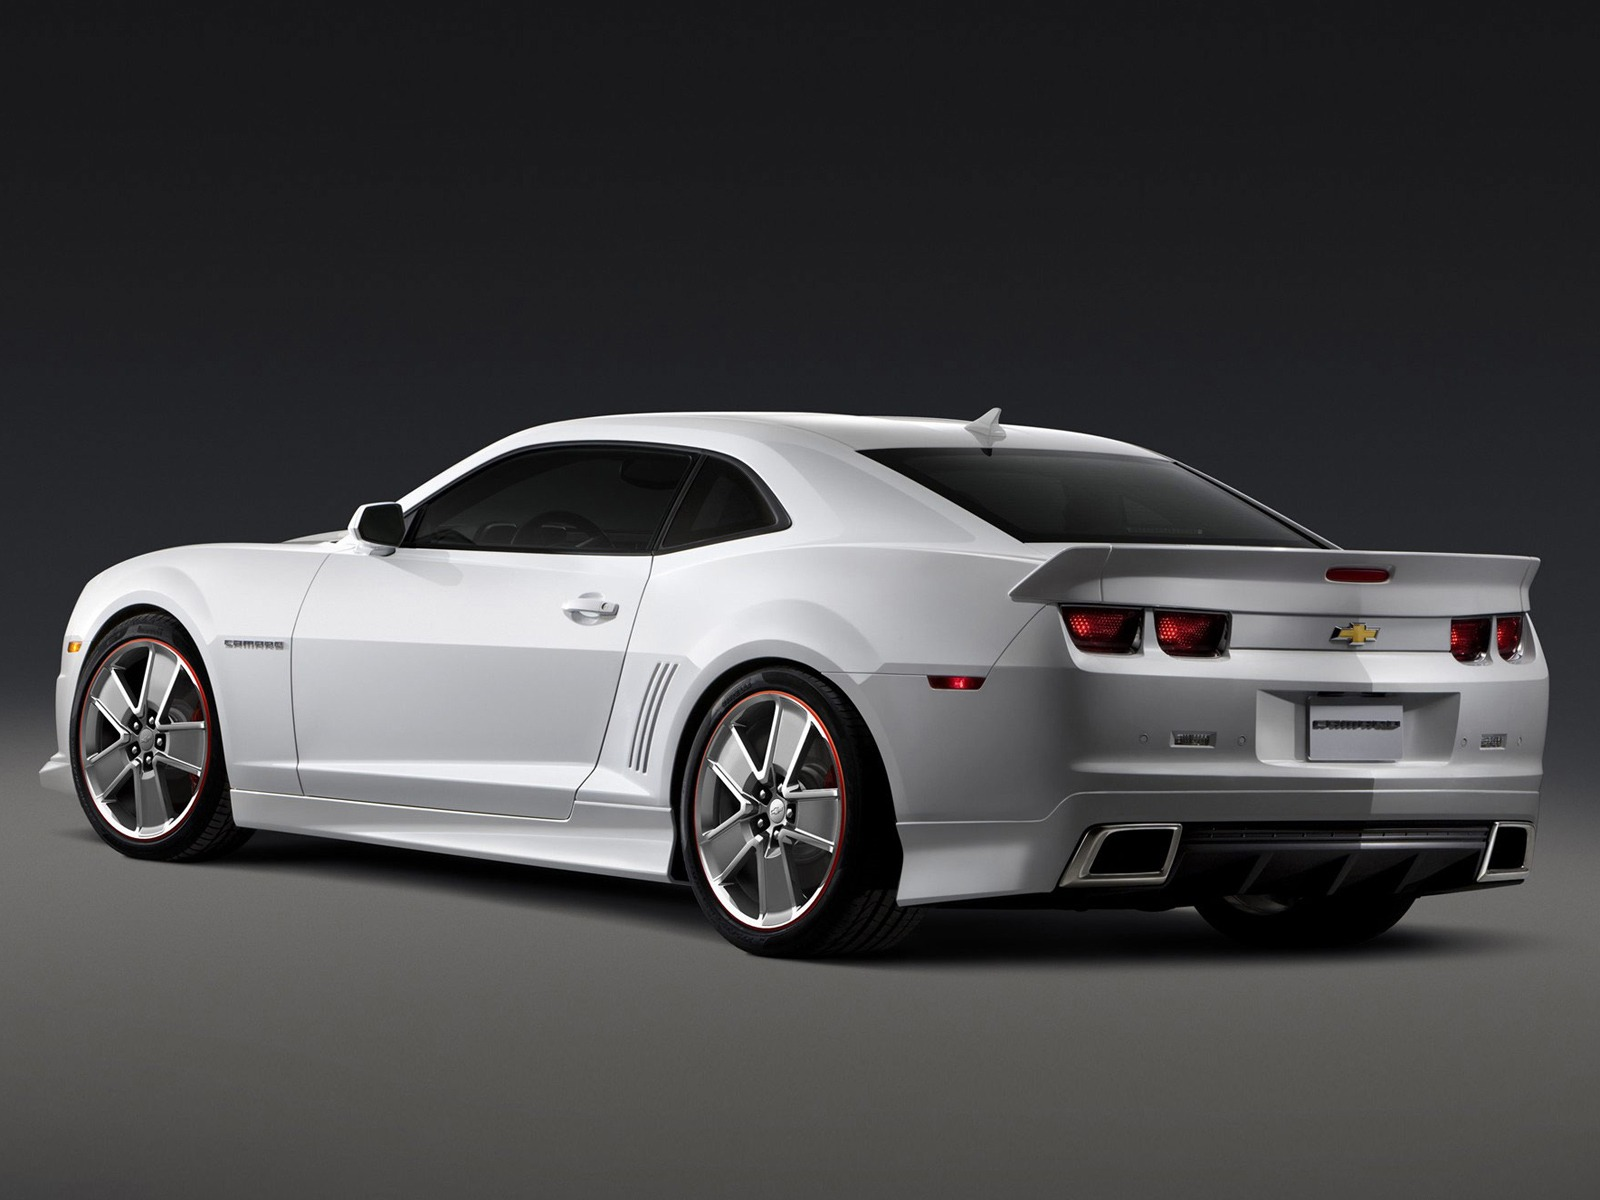 Wallpaper Chevrolet Cars Wallpapers in jpg format for download 1600x1200